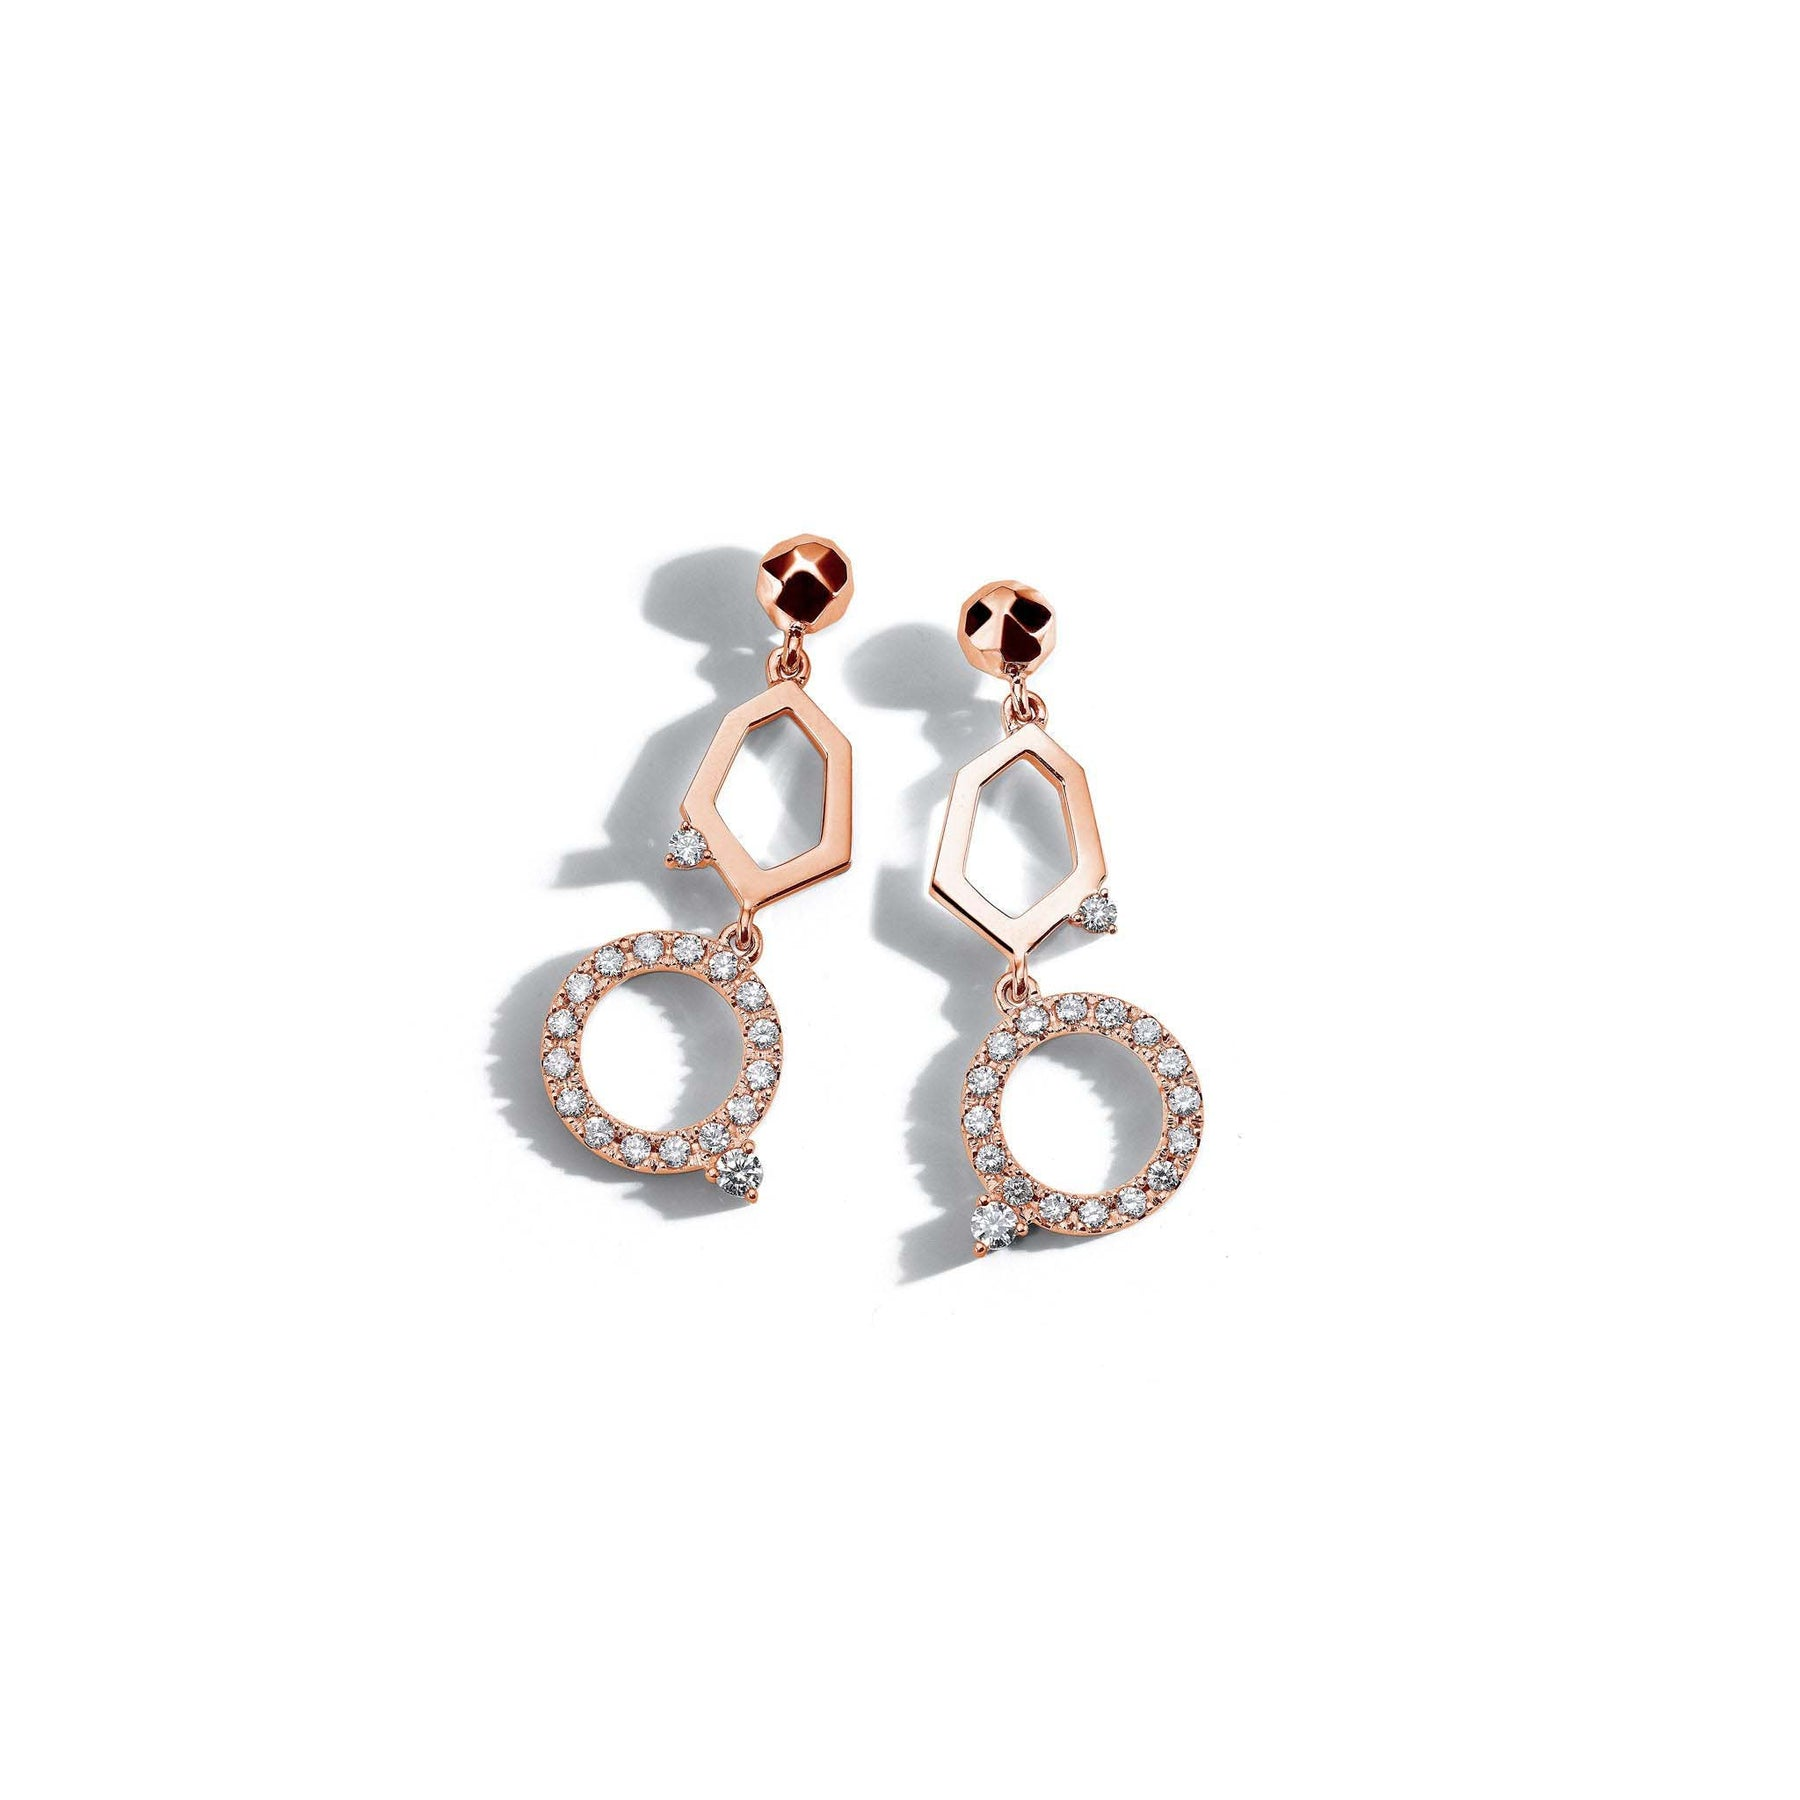 MIMI-SO-Jackson-2-Drop-Doha-Diamond-Earrings_18k Rose Gold